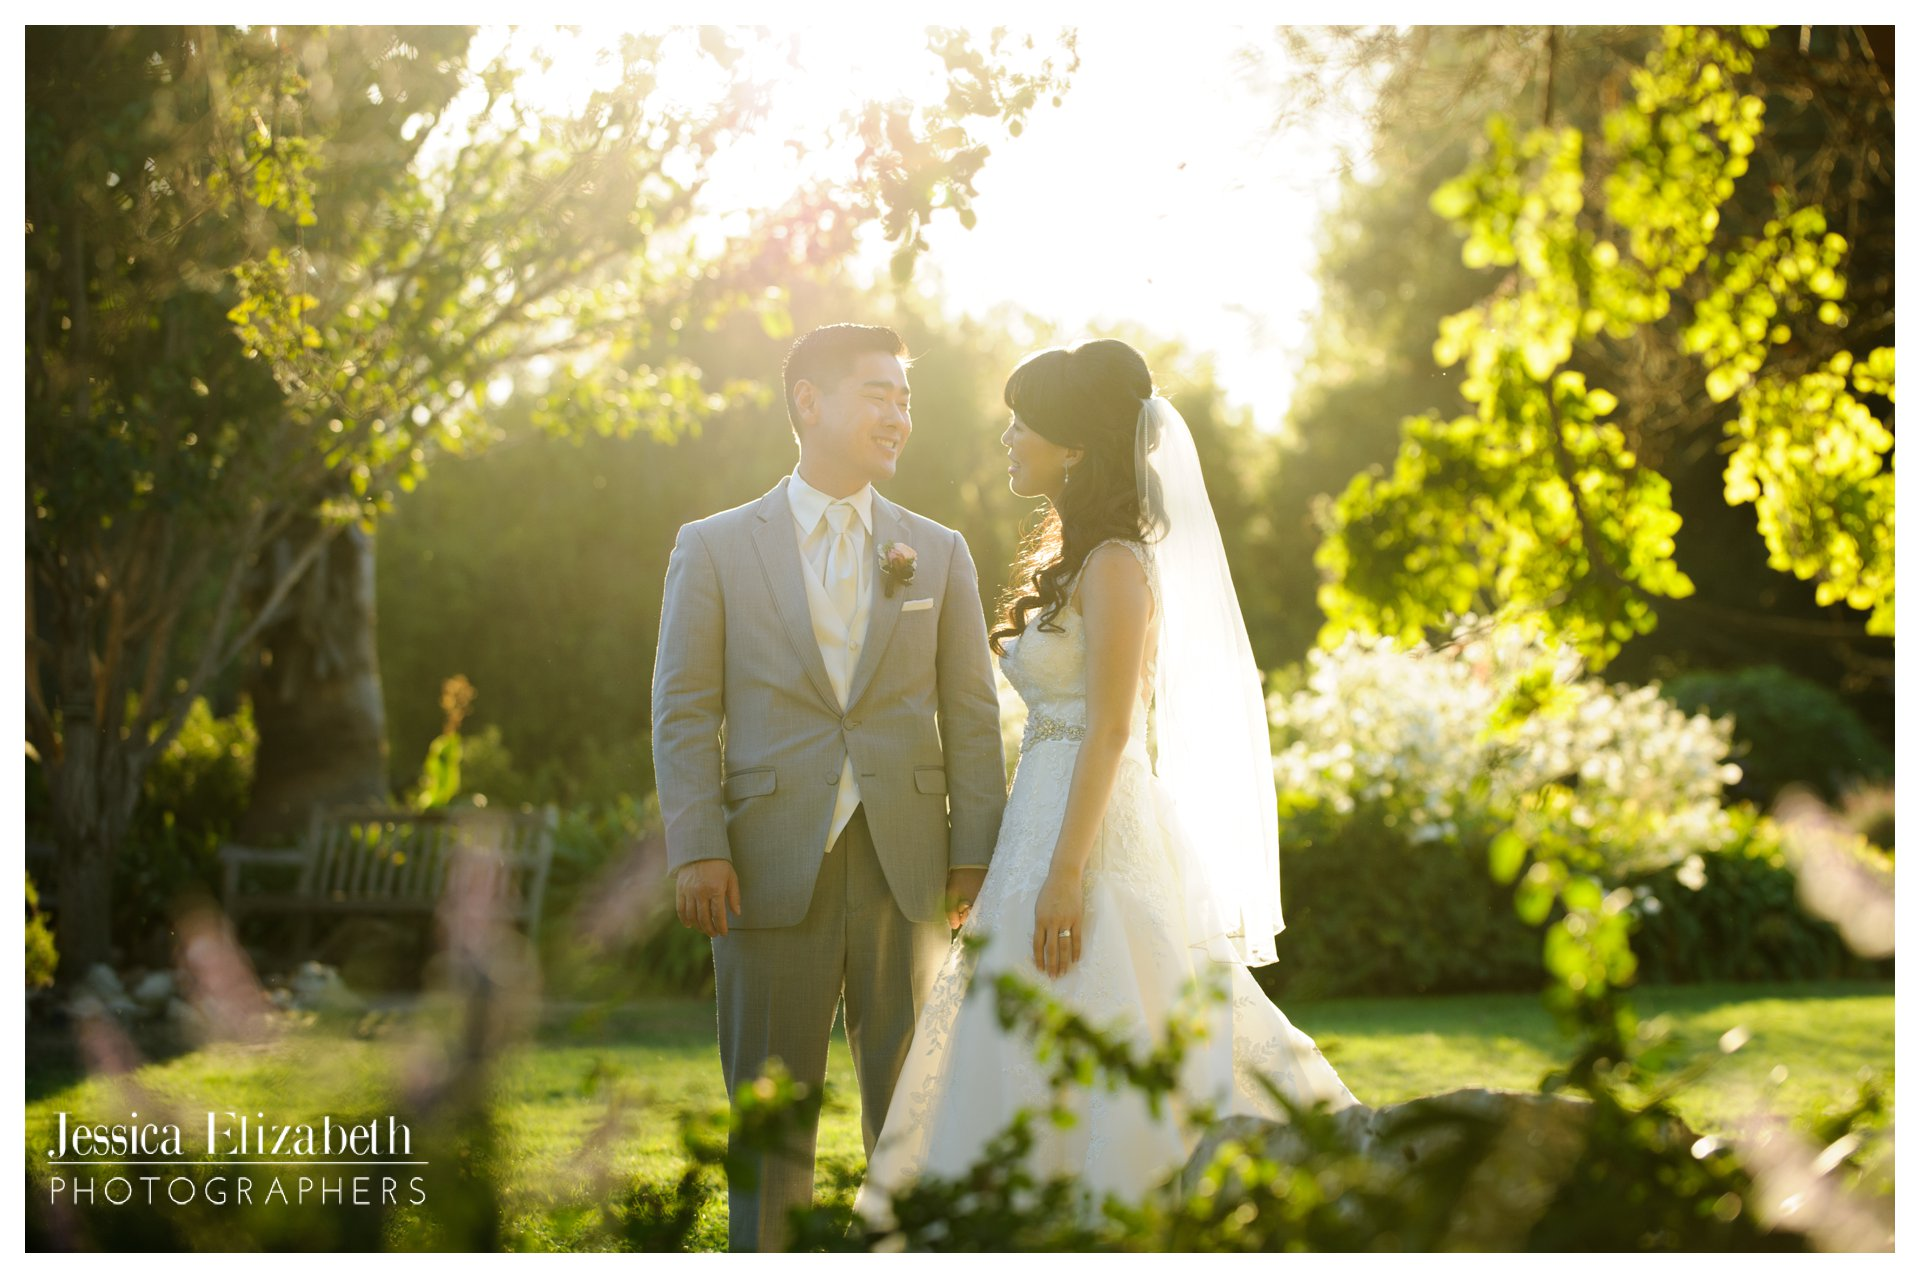 29-South Coast Botanic Garden Palos Verdes Wedding Photography by Jessica Elizabeth